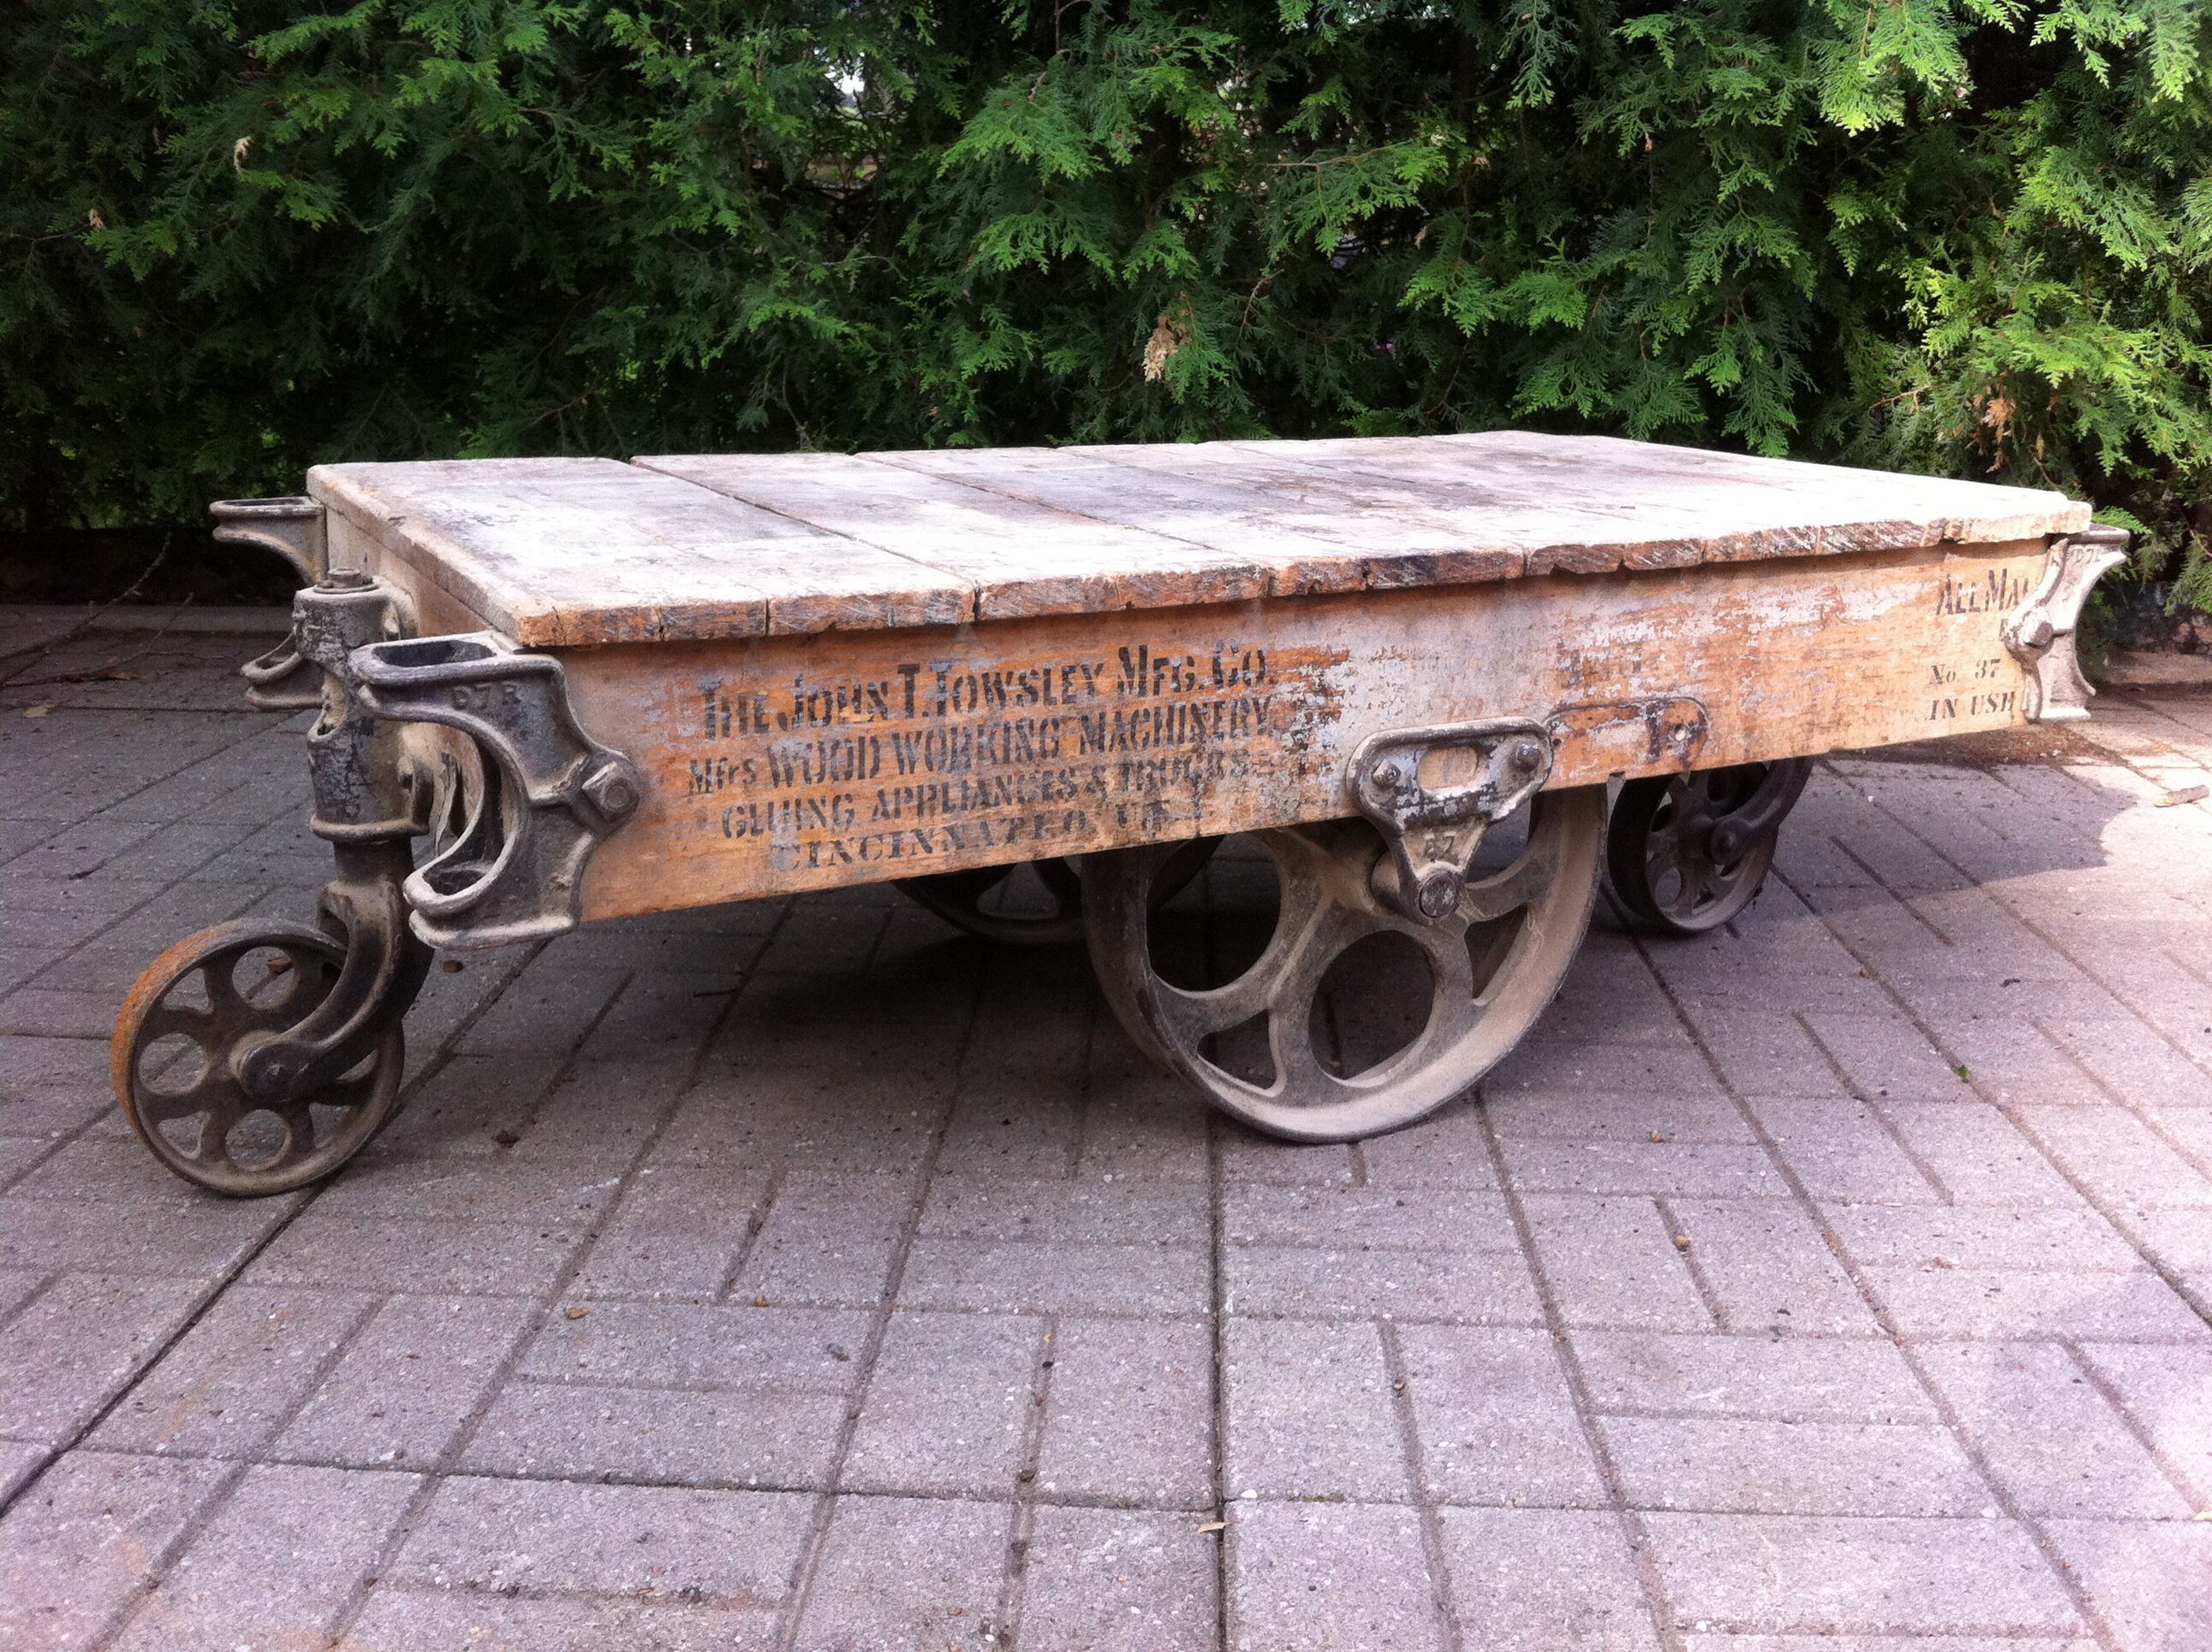 The John T Towsley Mfg Co Cincinnati Ohio USA factory cart